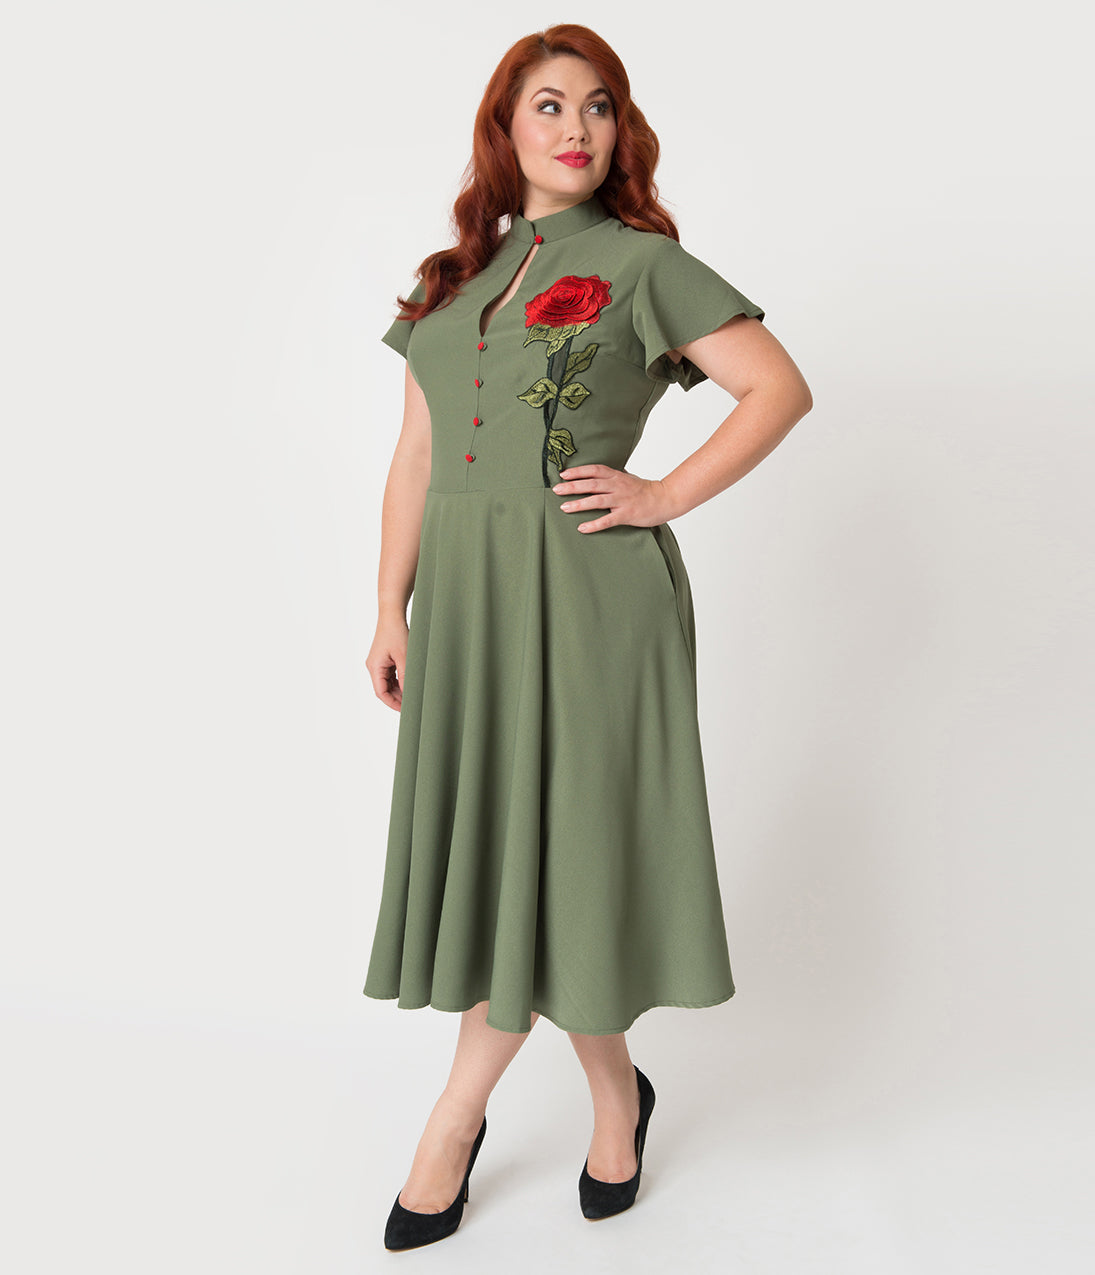 1950s Housewife Dress | 50s Day Dresses 1950S Olive Green  Embroidered Red Rose Baltimore Swing Dress $74.00 AT vintagedancer.com